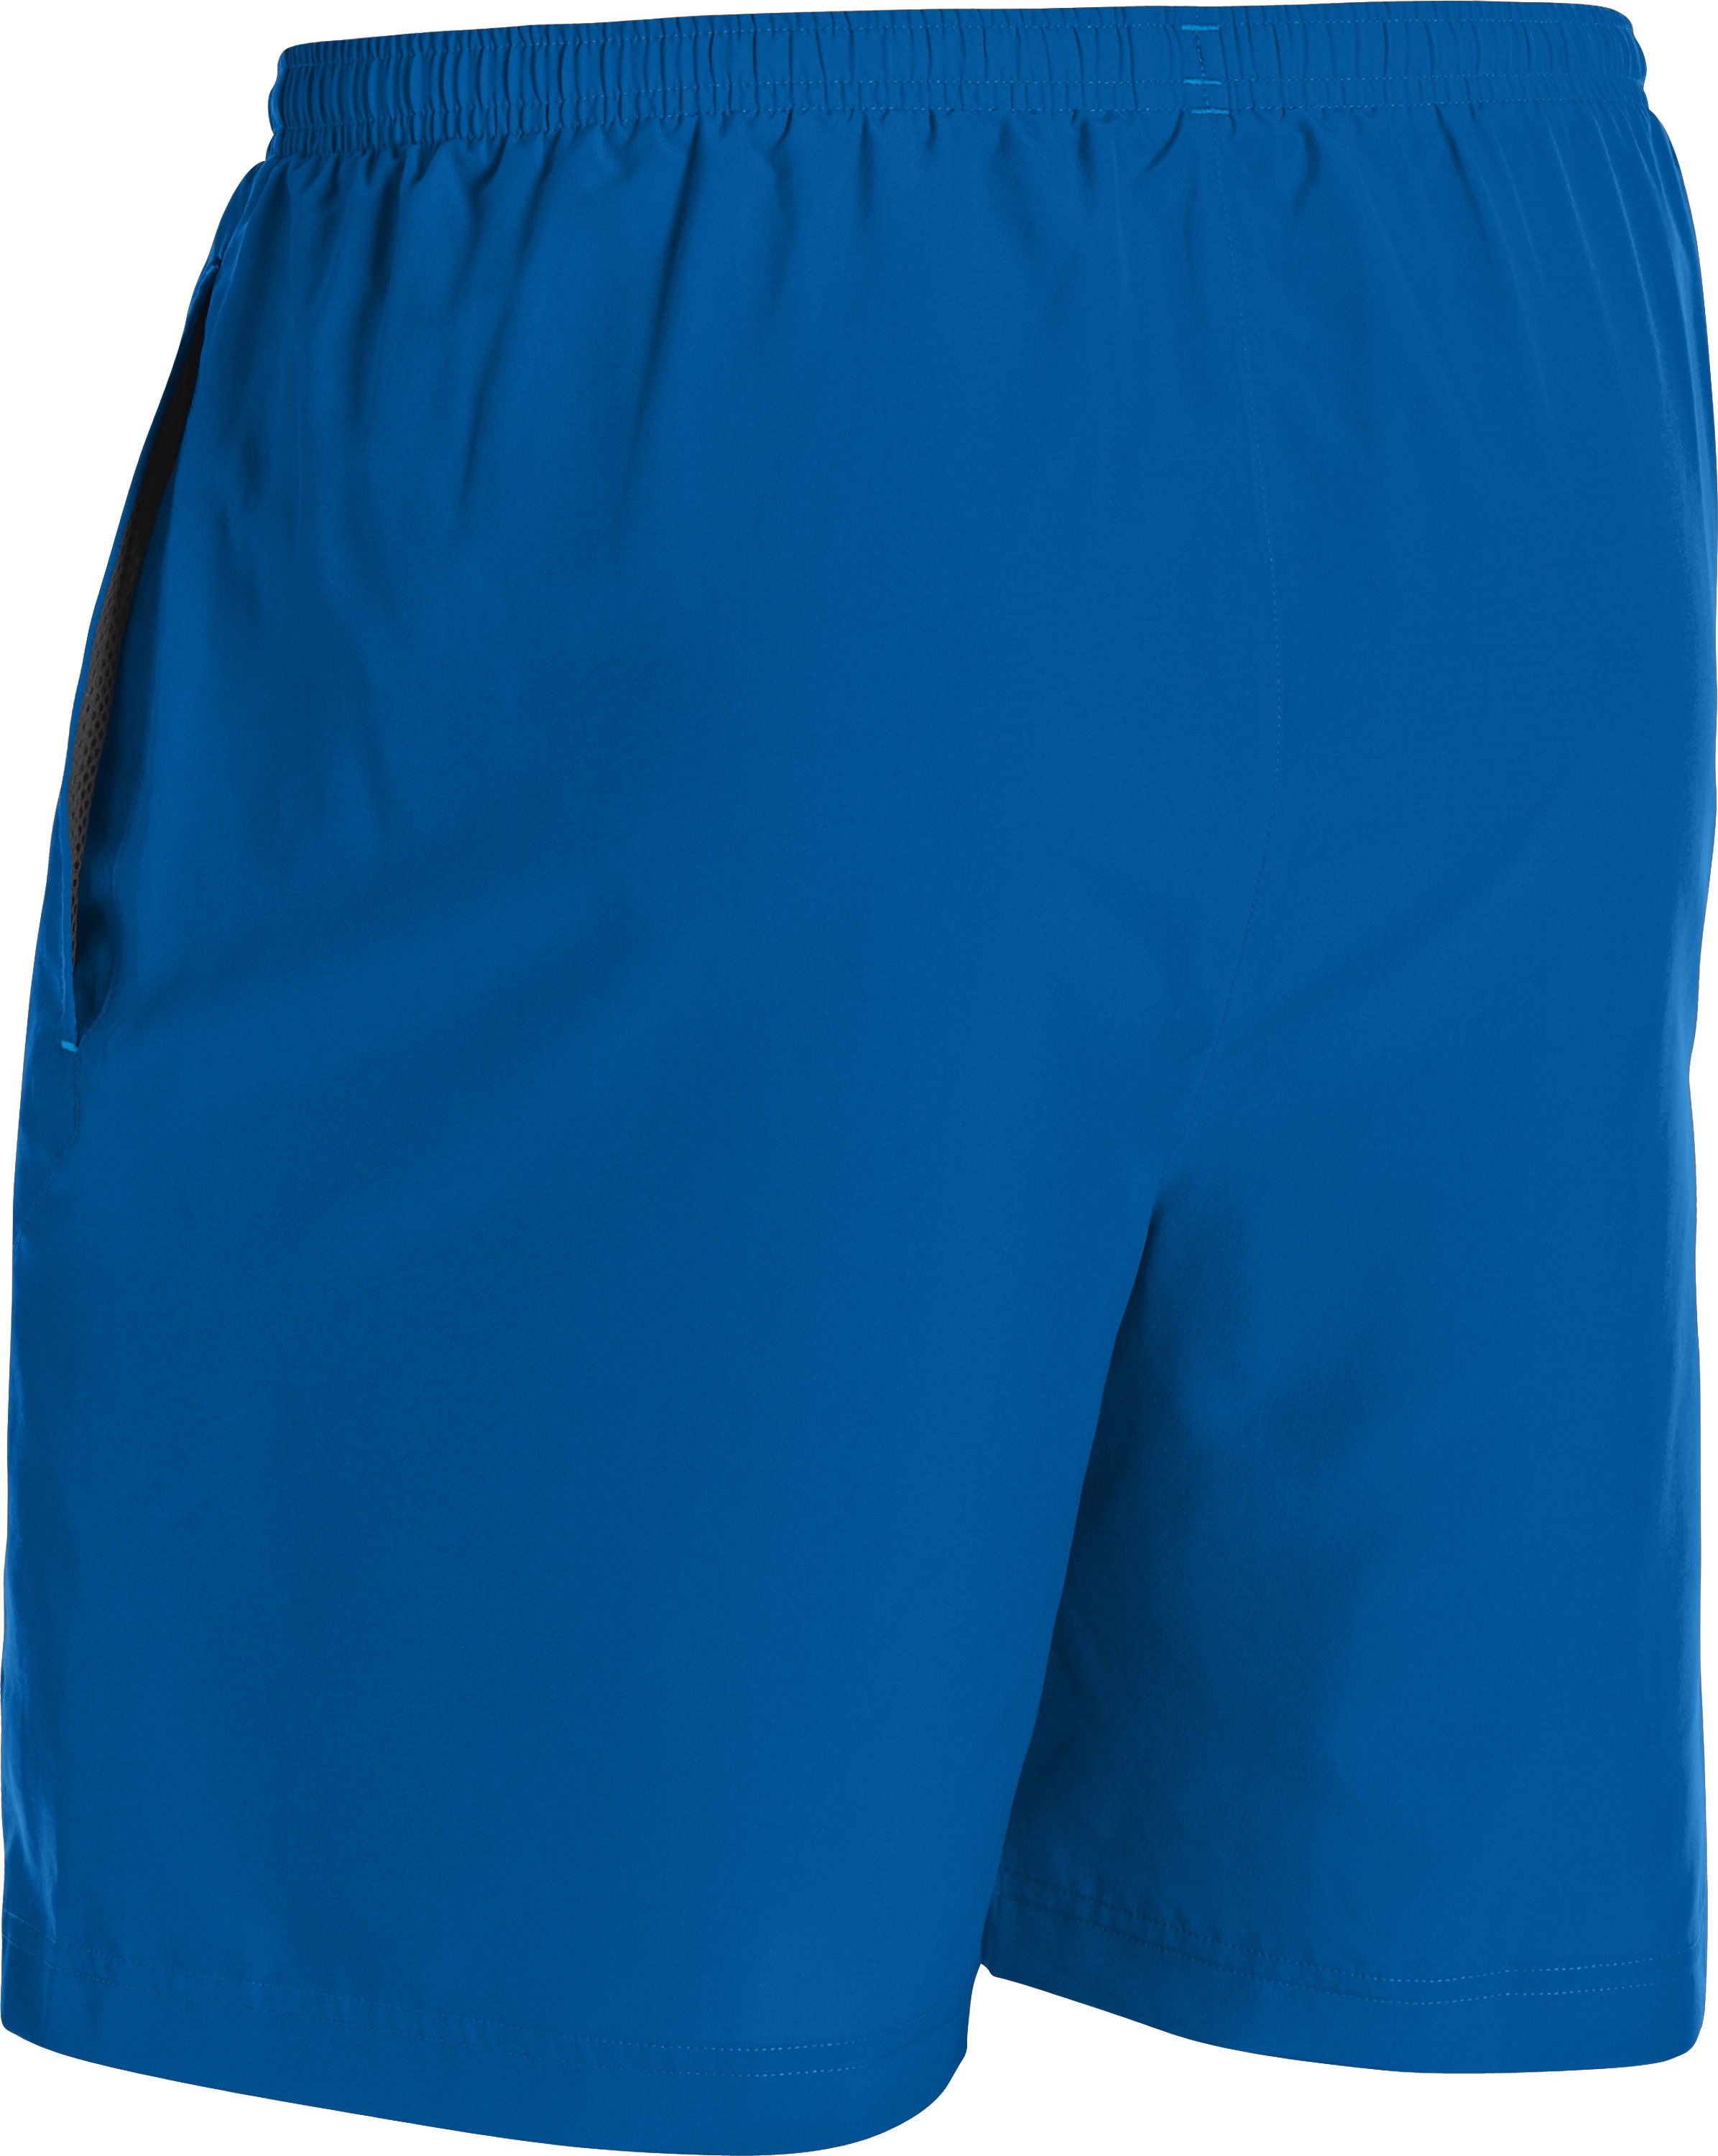 "Men's UA Escape 7"" Solid Run Shorts, SUPERIOR BLUE"